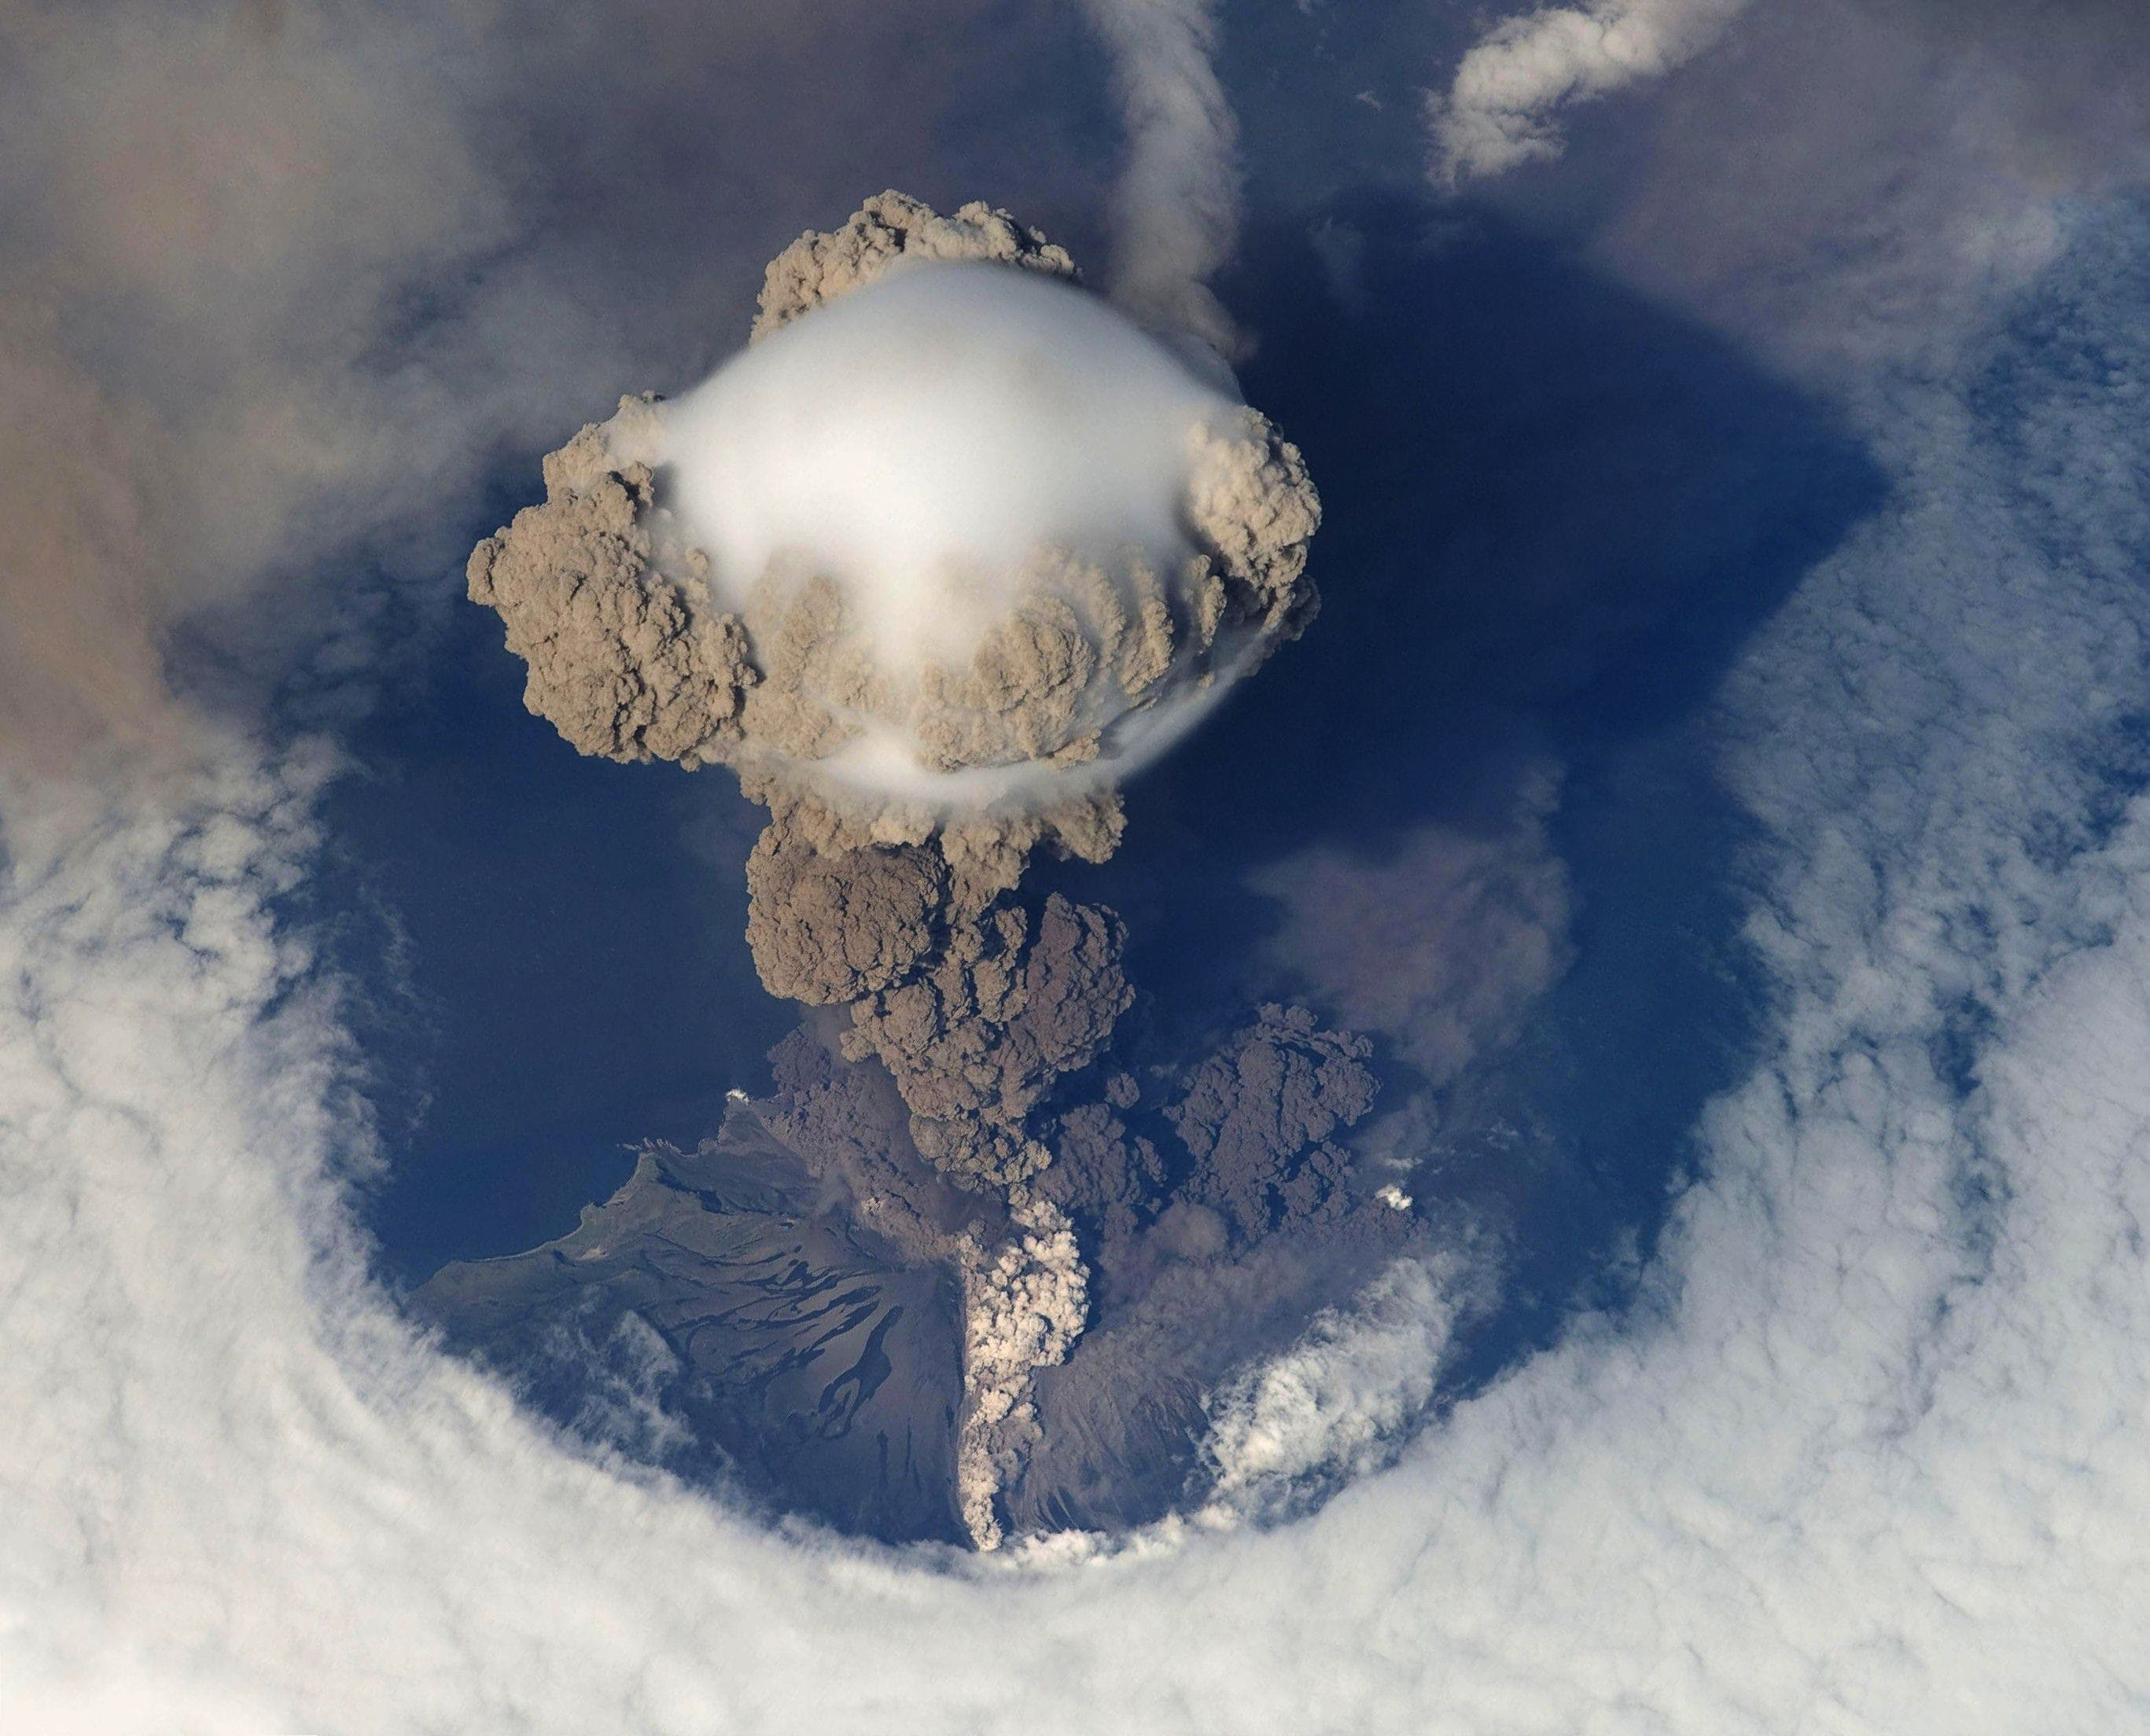 Top View of Volcano Erupting during Daytime